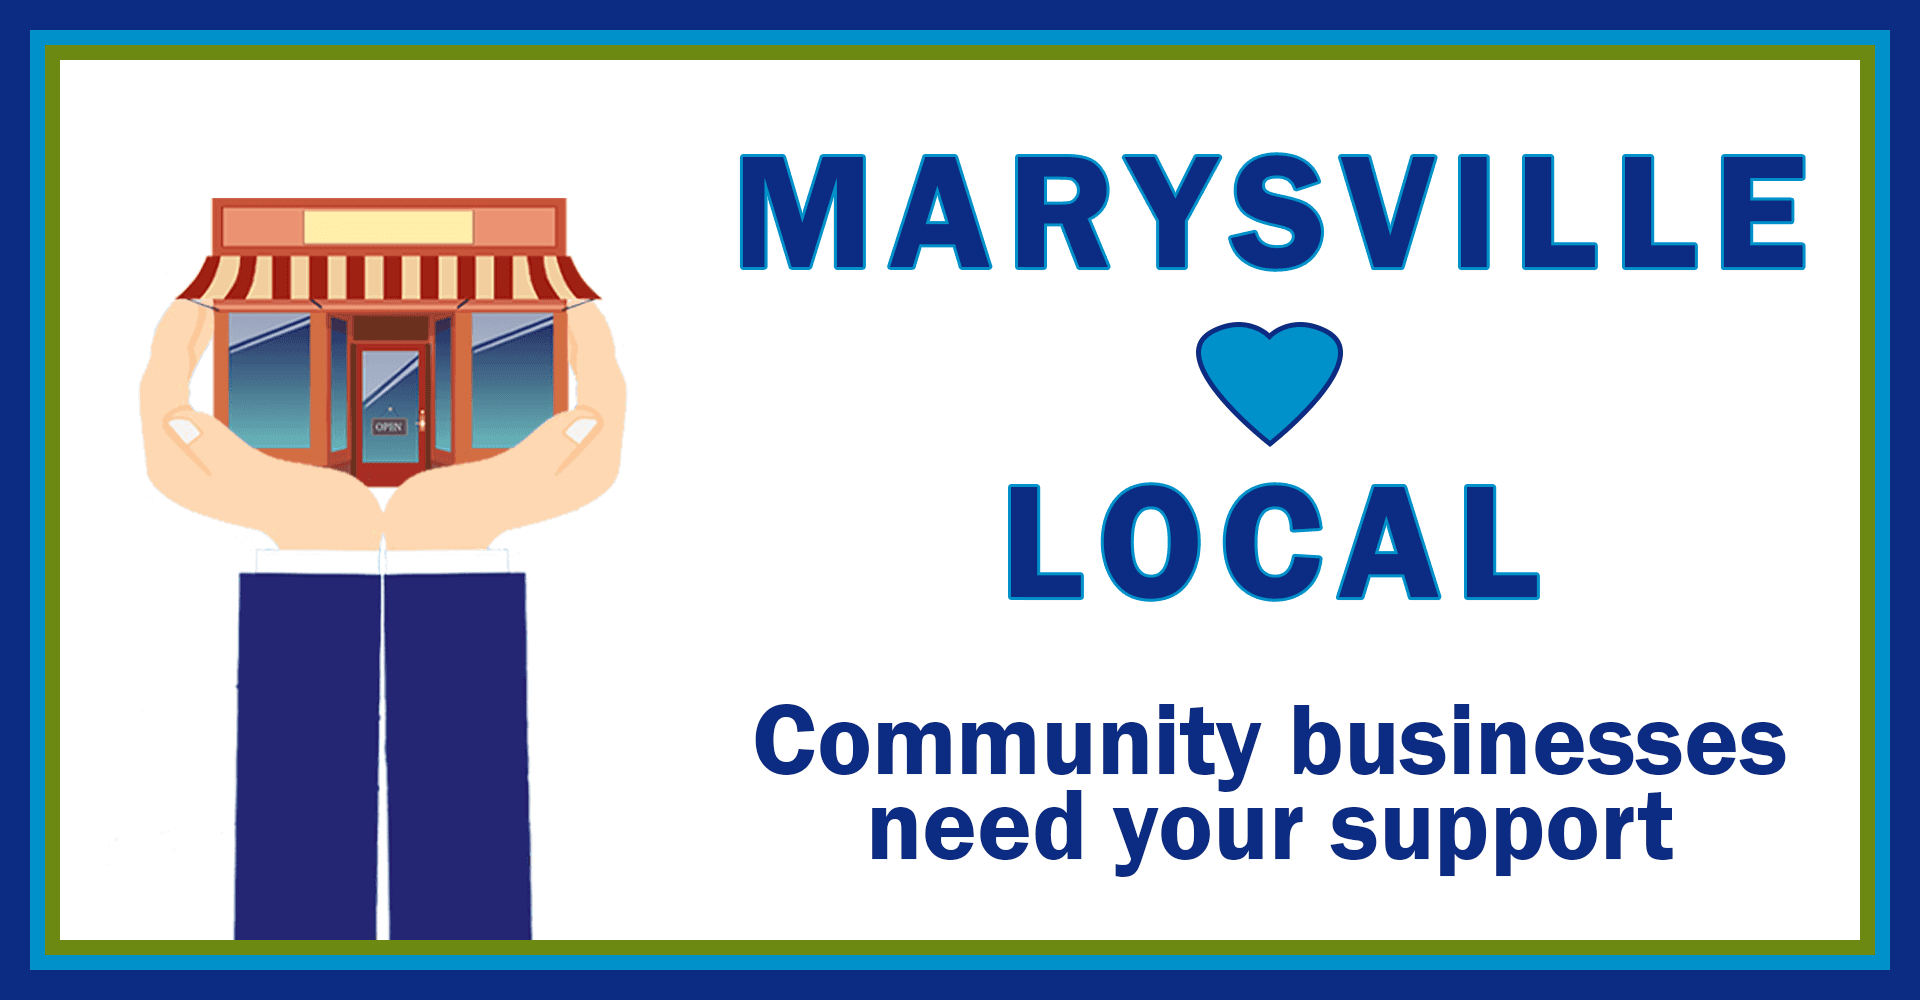 Marysville Loves Local. Community businesses need your support